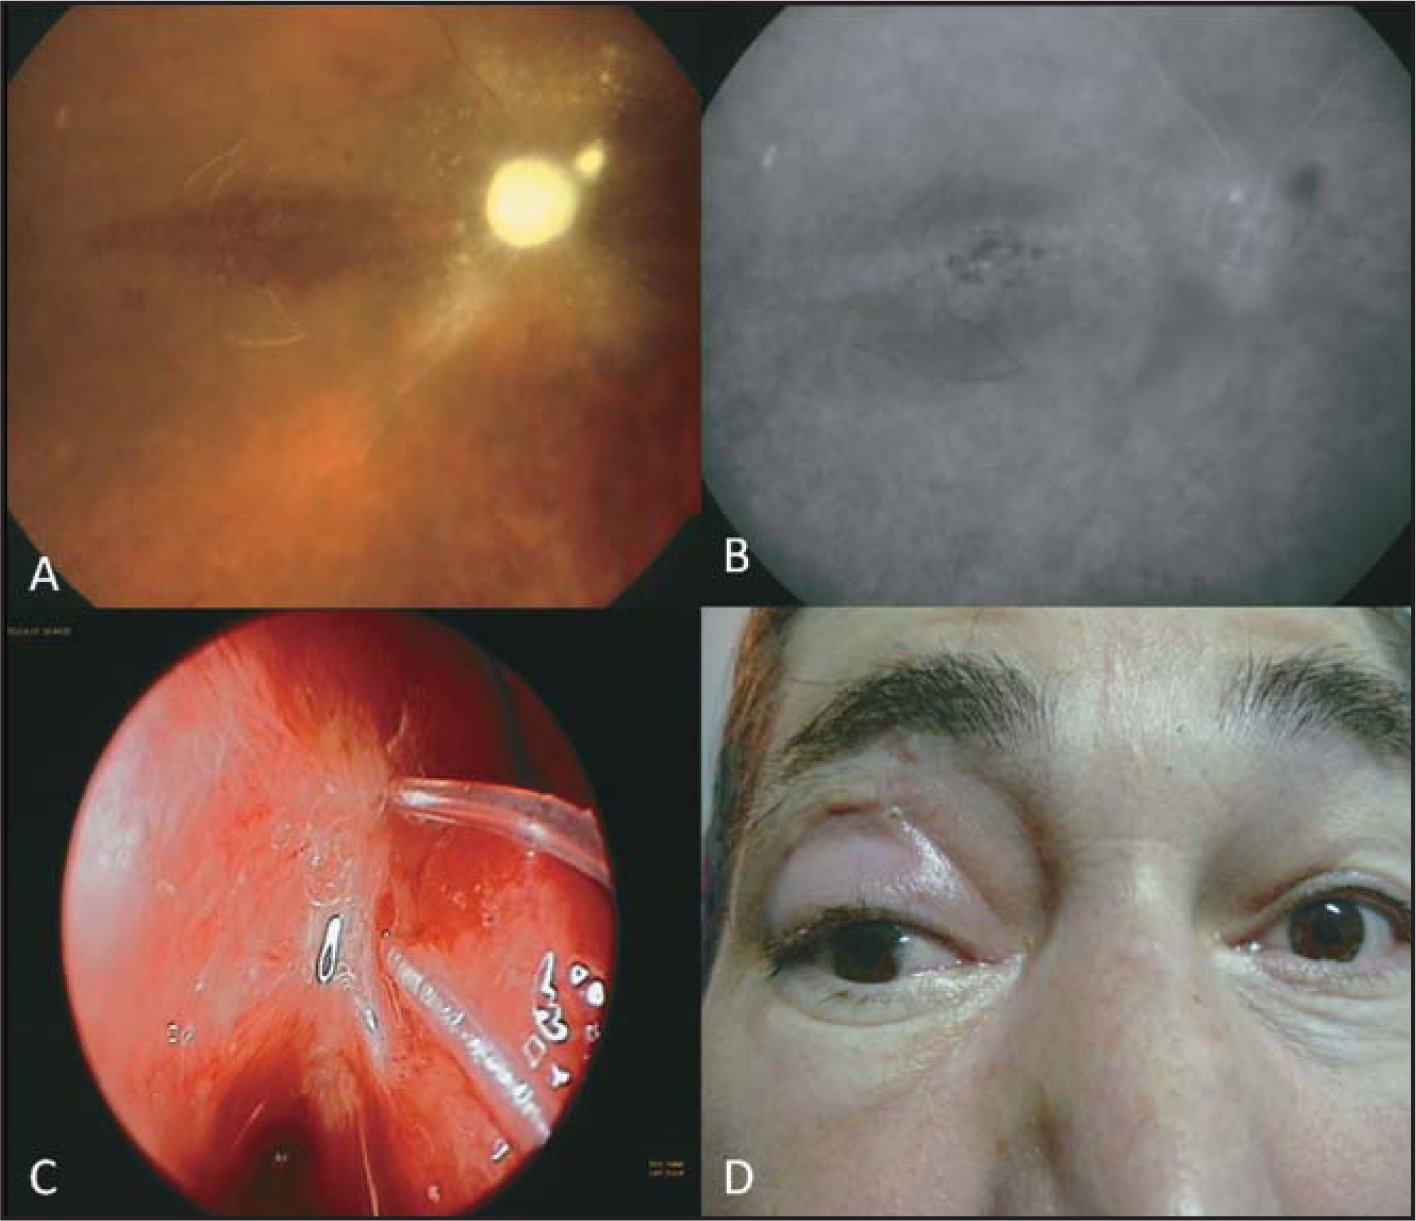 (A) Fundus photograph at 3 months shows optic atrophy and obliterated vessels. (B) Fluorescein angiography shows diffuse window defects in the posterior pole and hypofluorescent focus nasal to the optic disc at 3 months. (C) Endoscopic examination reveals silicon tubes and scar tissue next to the middle turbinate. (D) The patient with slight ptosis and exotropia at 3 months.